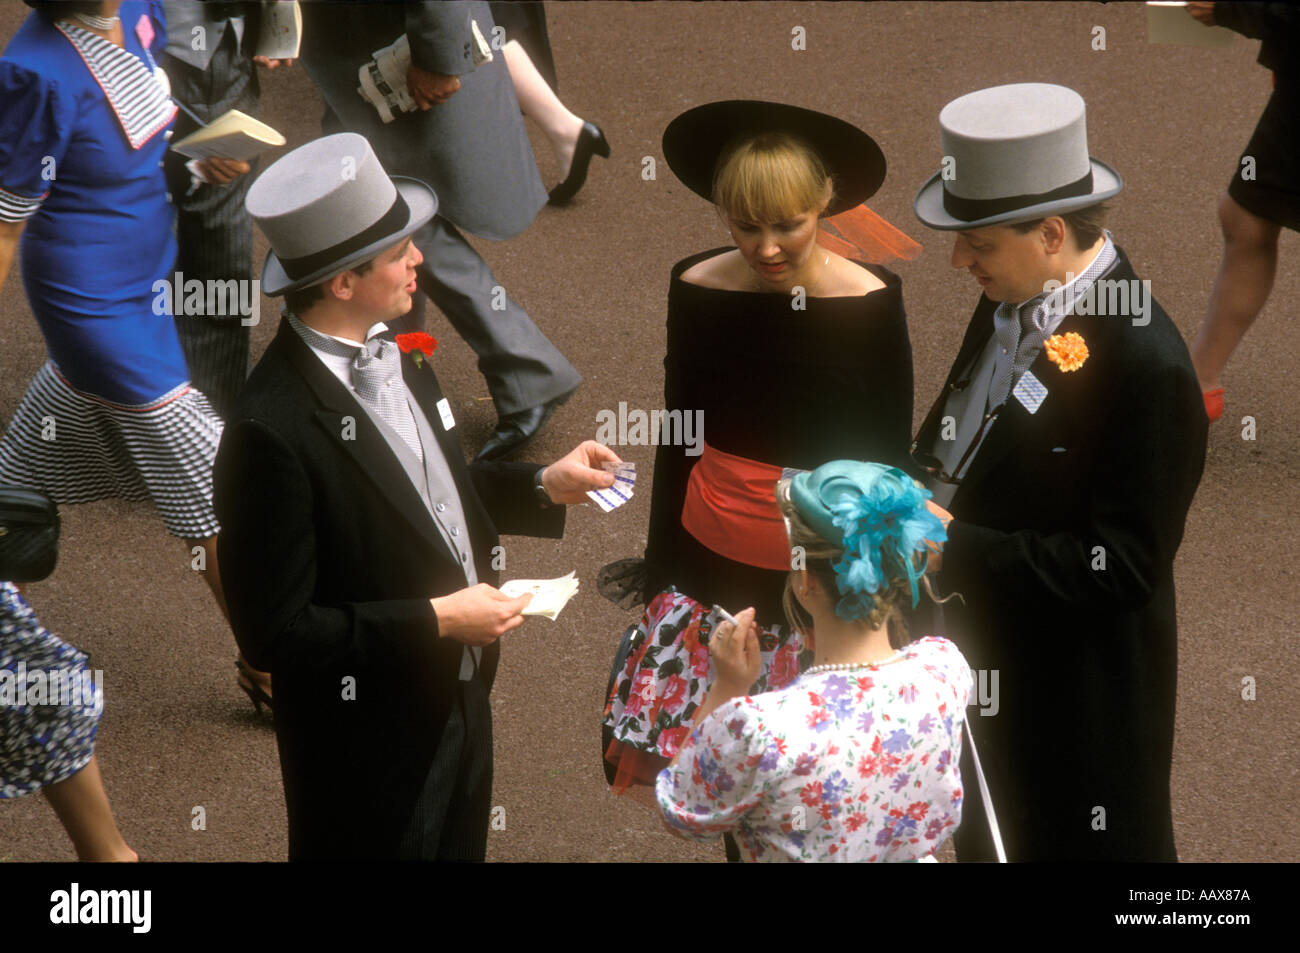 Horse races at Ascot. - Stock Image